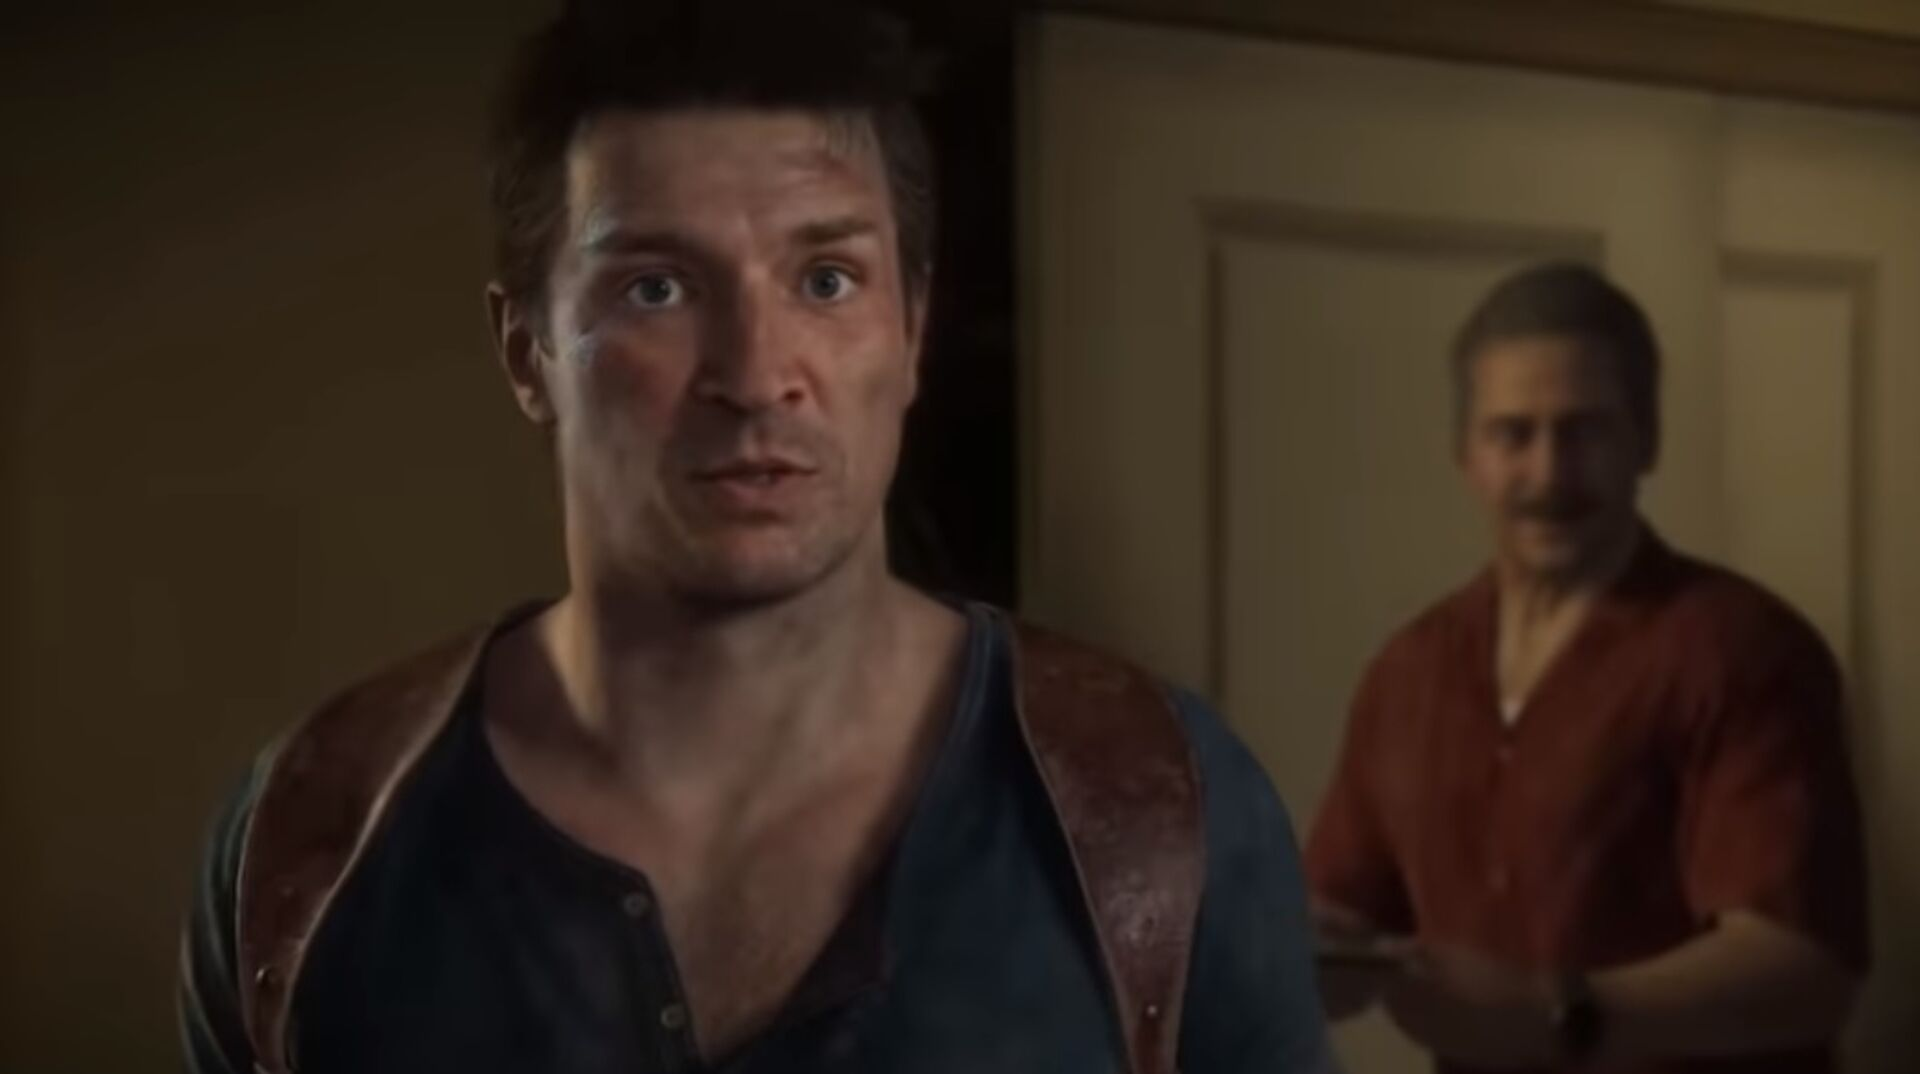 Uncharted 4 Deepfake Starring Nathan Fillion Is As Impressive As